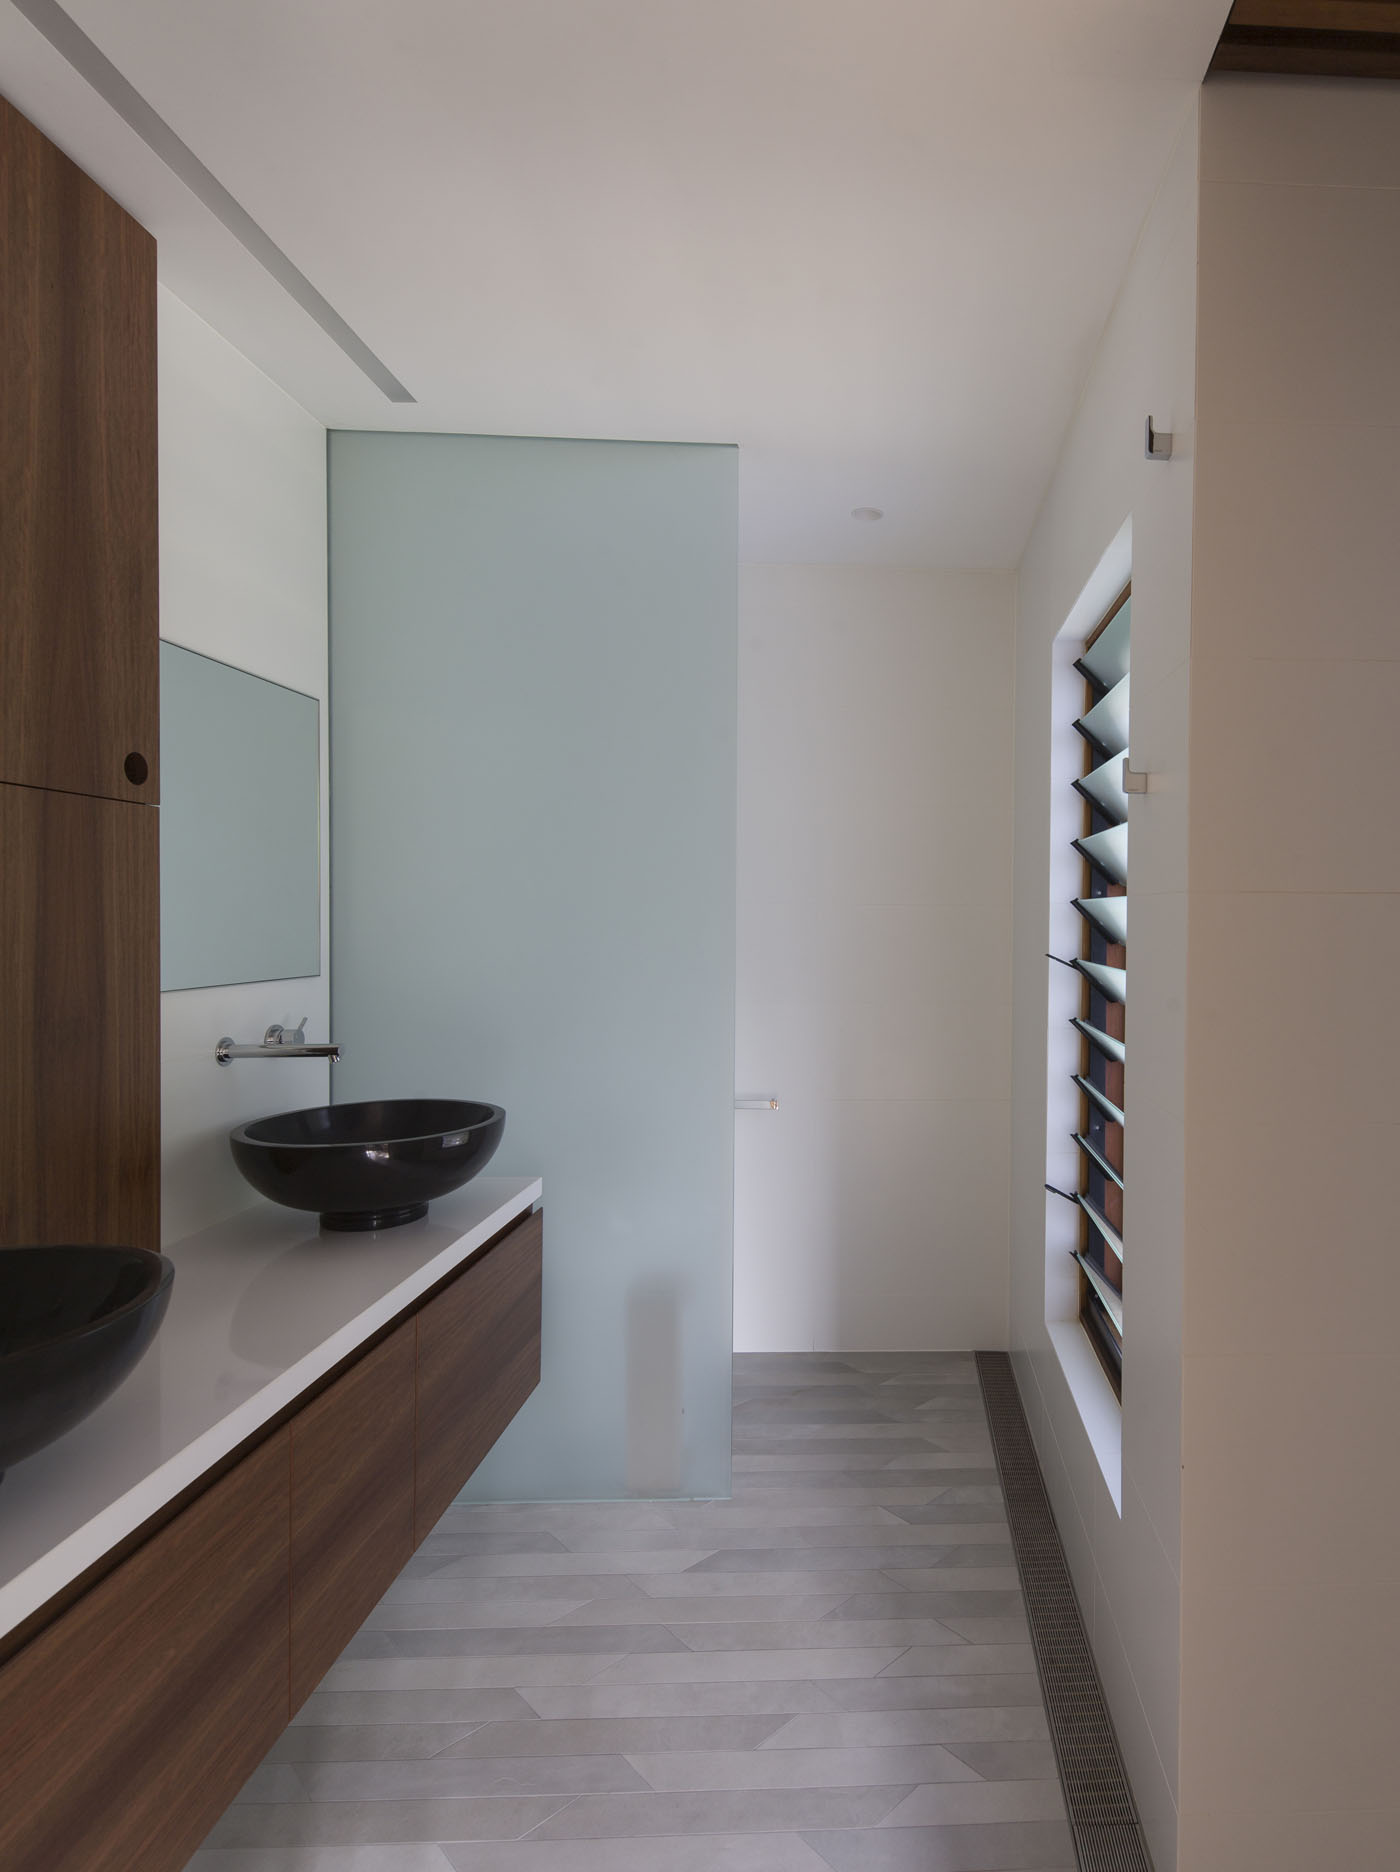 Sheppard Wilson House by Sydney award winning residential architecture office Sam Crawford Architects. Bespoke bathroom featuring geometric floor tiles